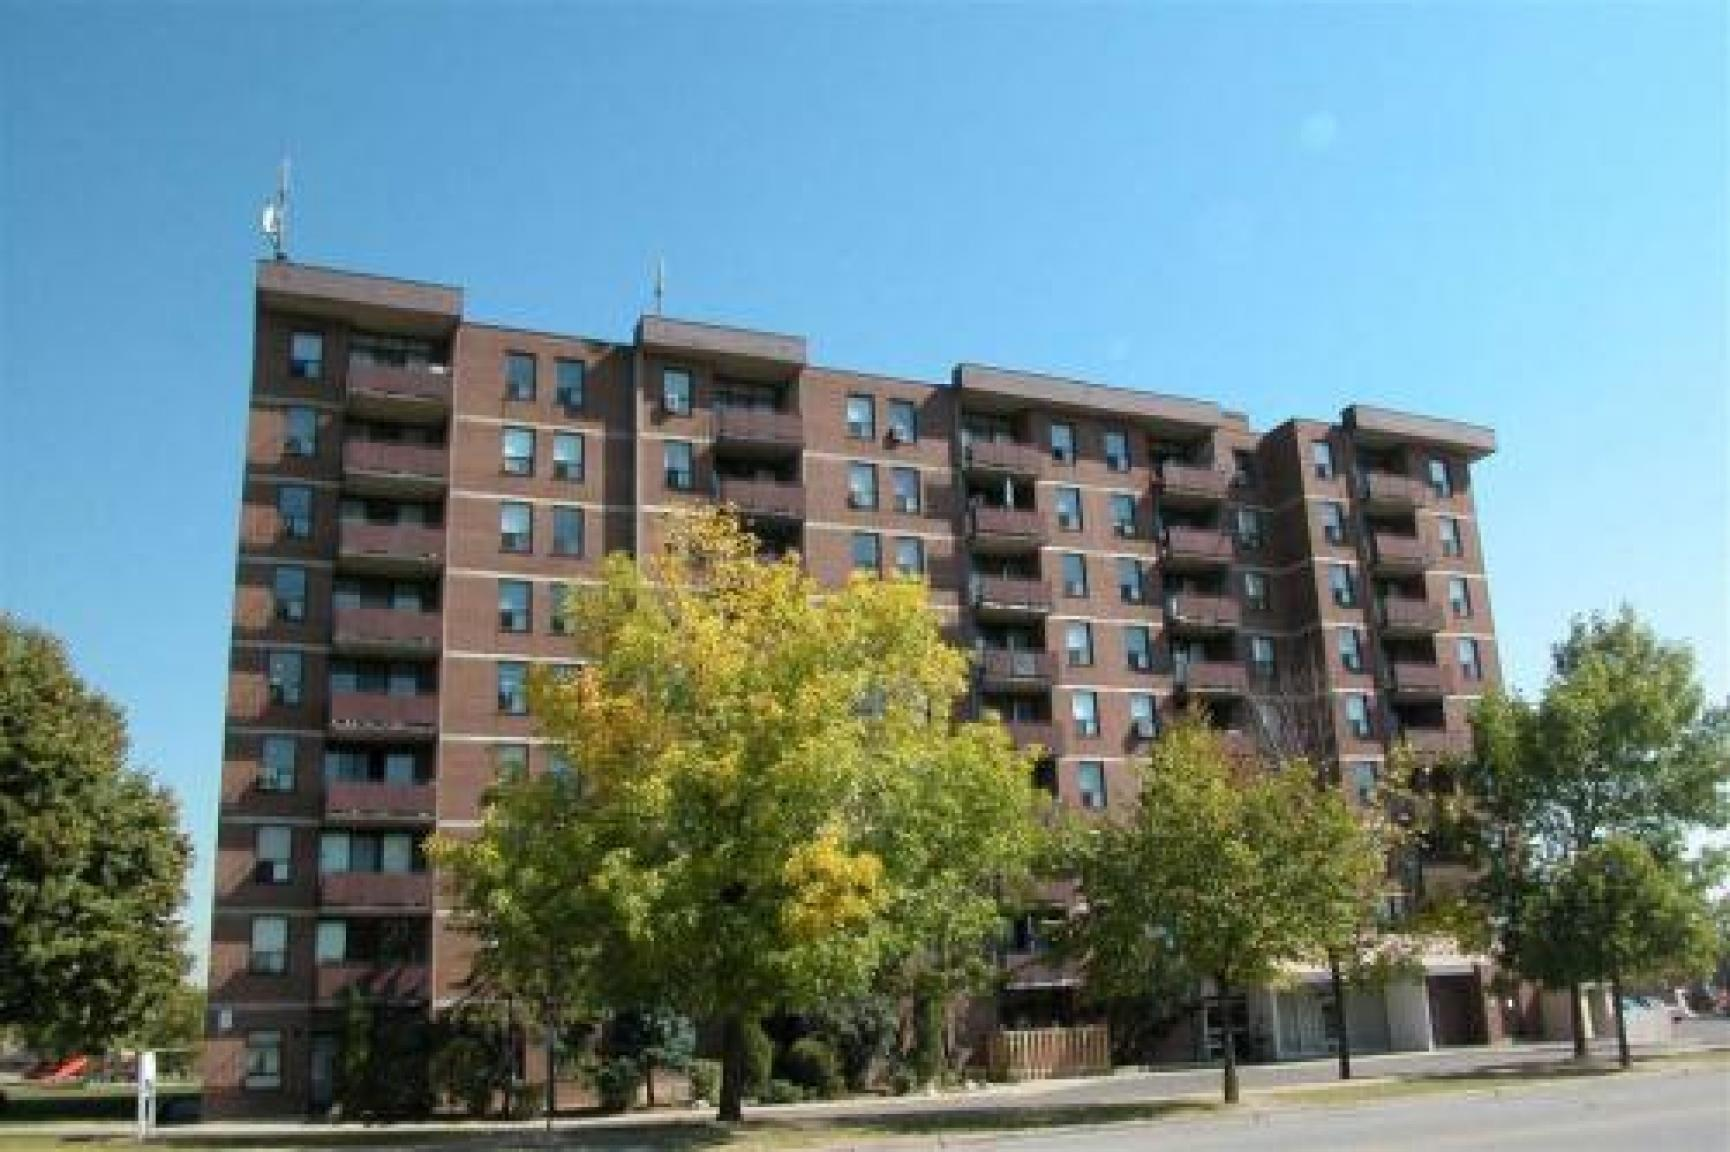 37 Eastbourne Drive Apartments, Brampton ON - Walk Score